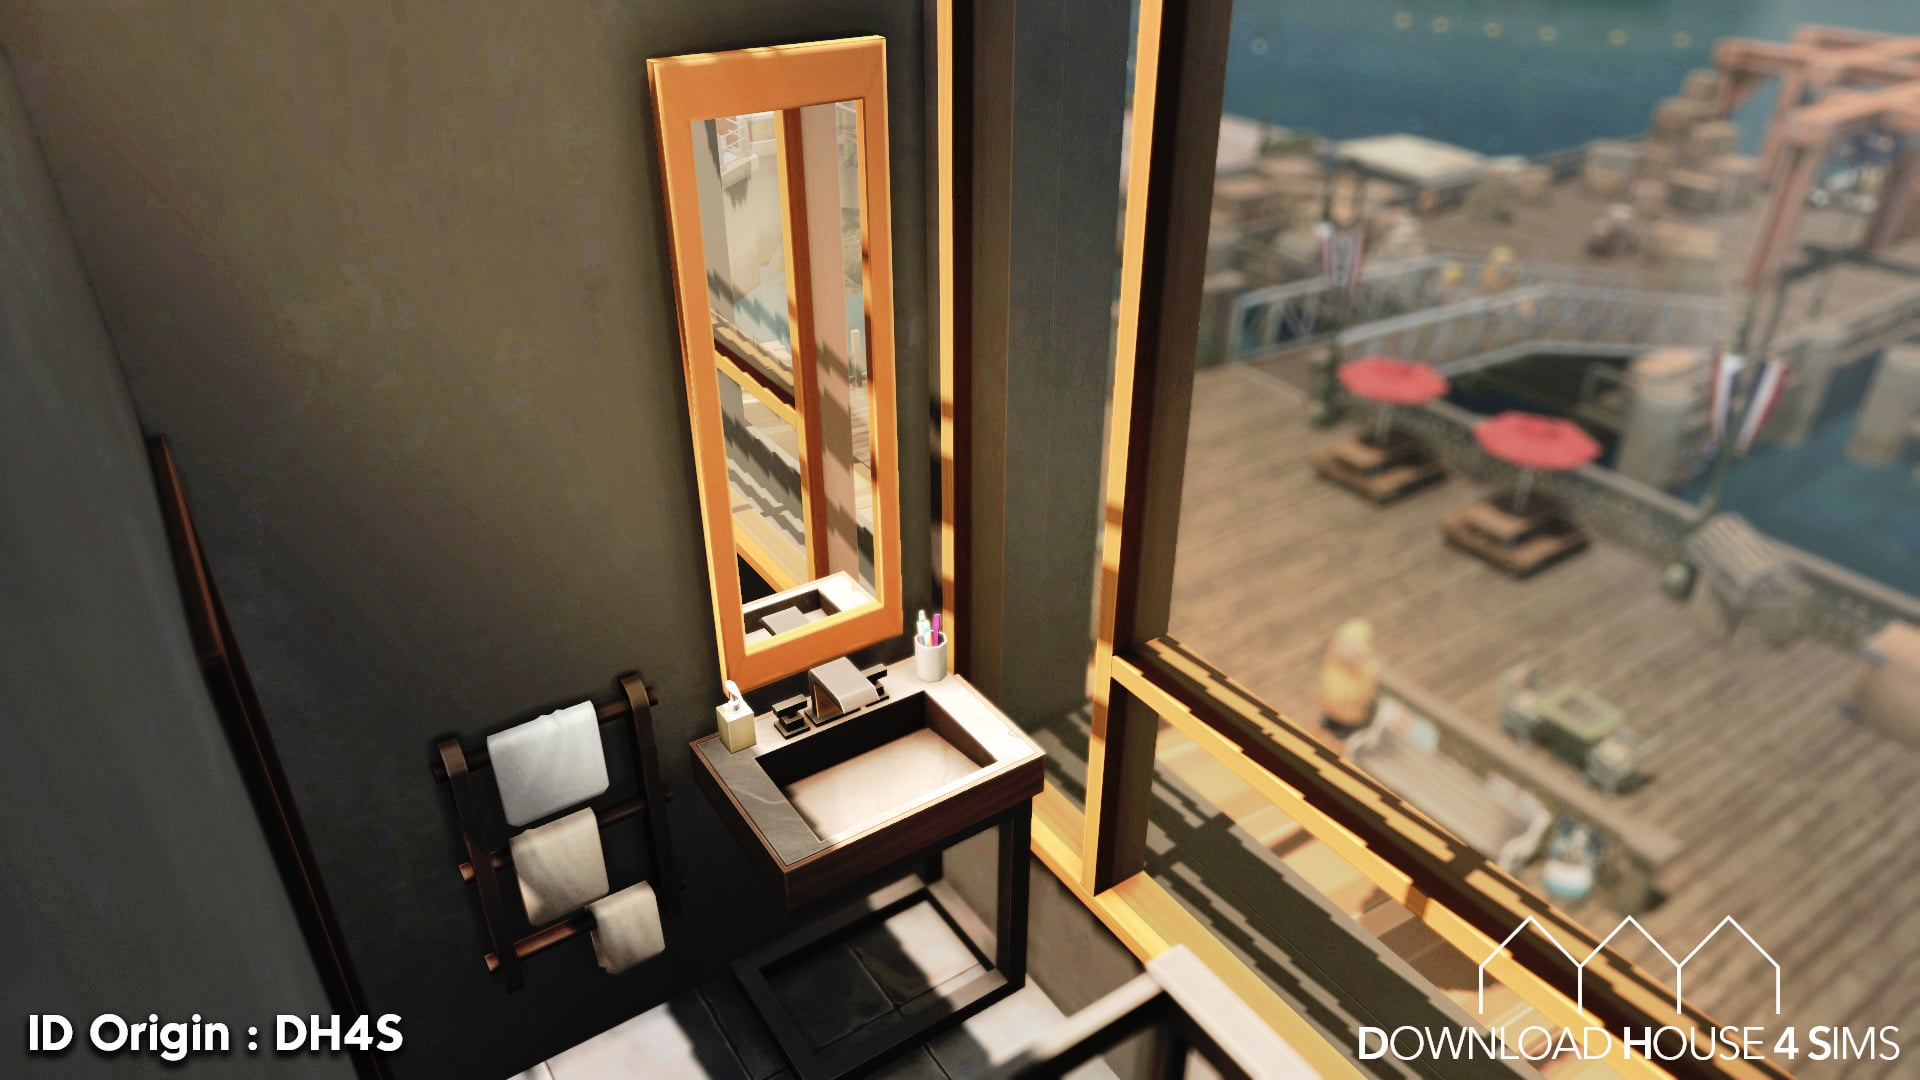 DH4S-Download-house-for-sims-dock-container-eco-house-28